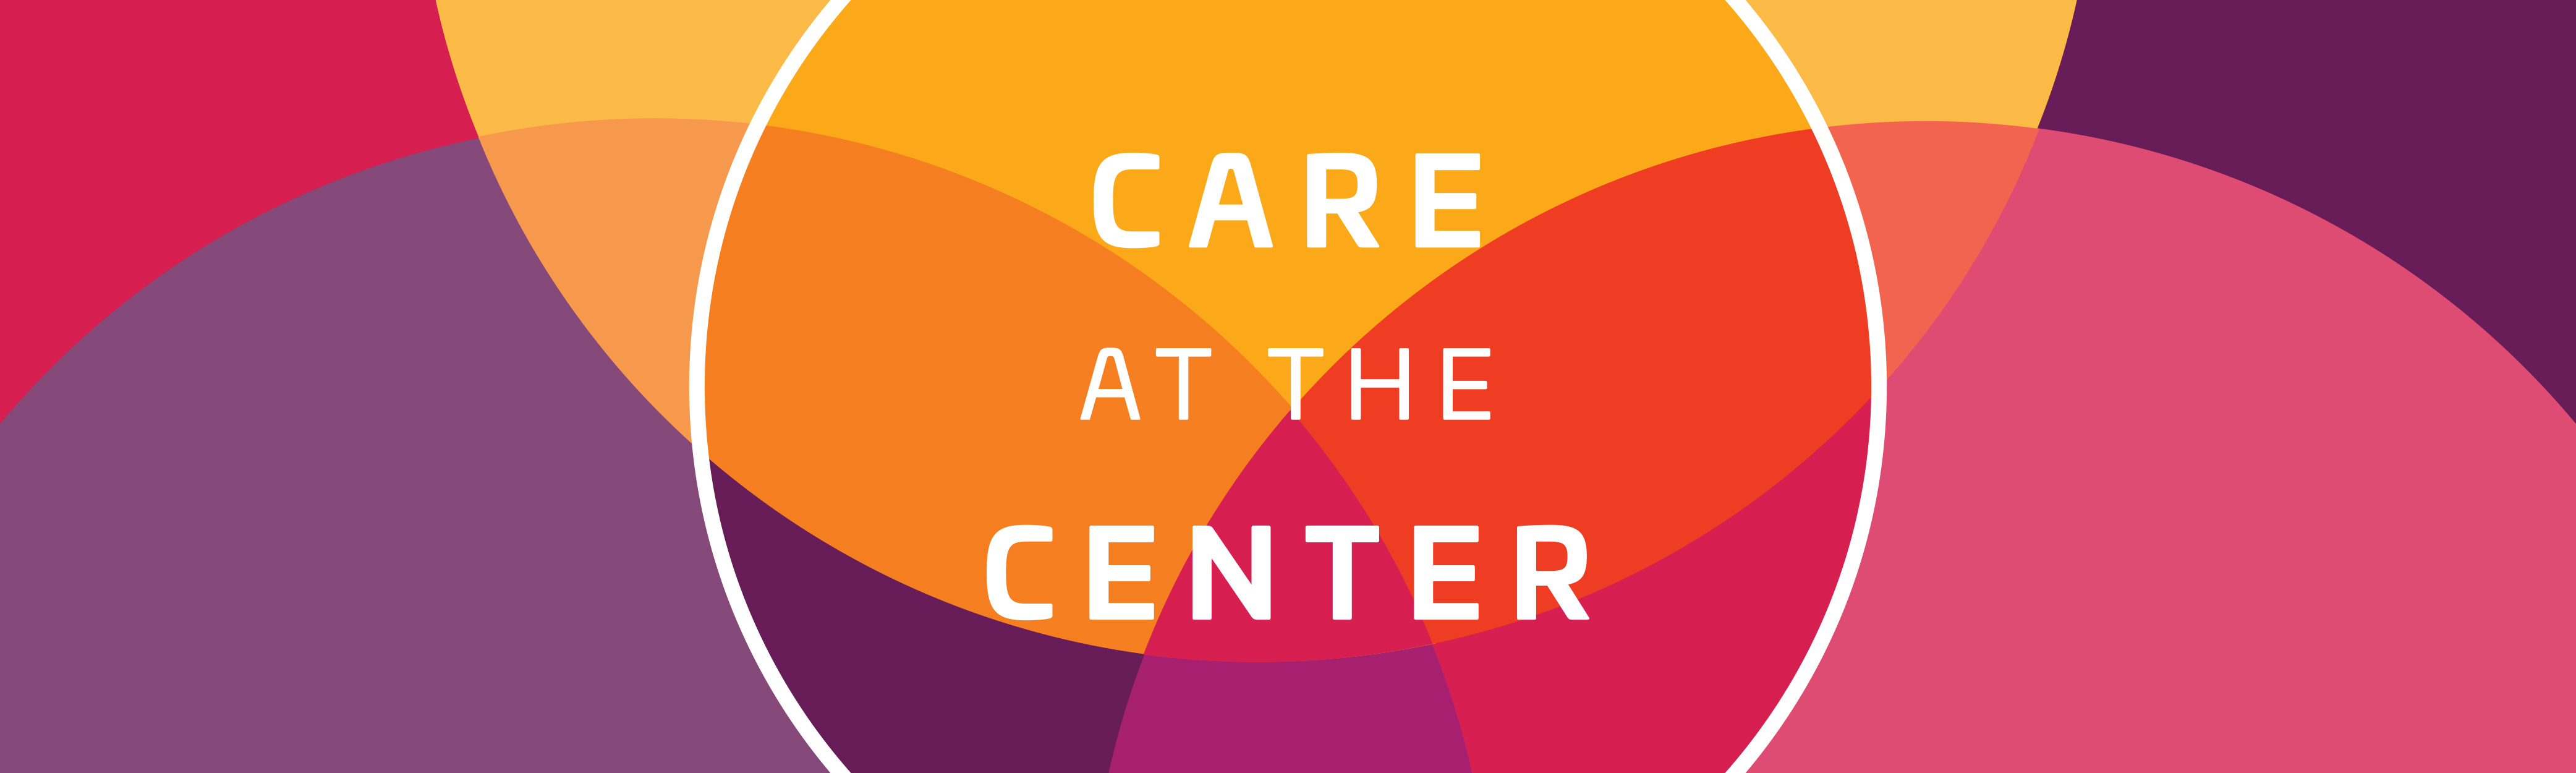 Header-CareAtTheCenter-1000x300